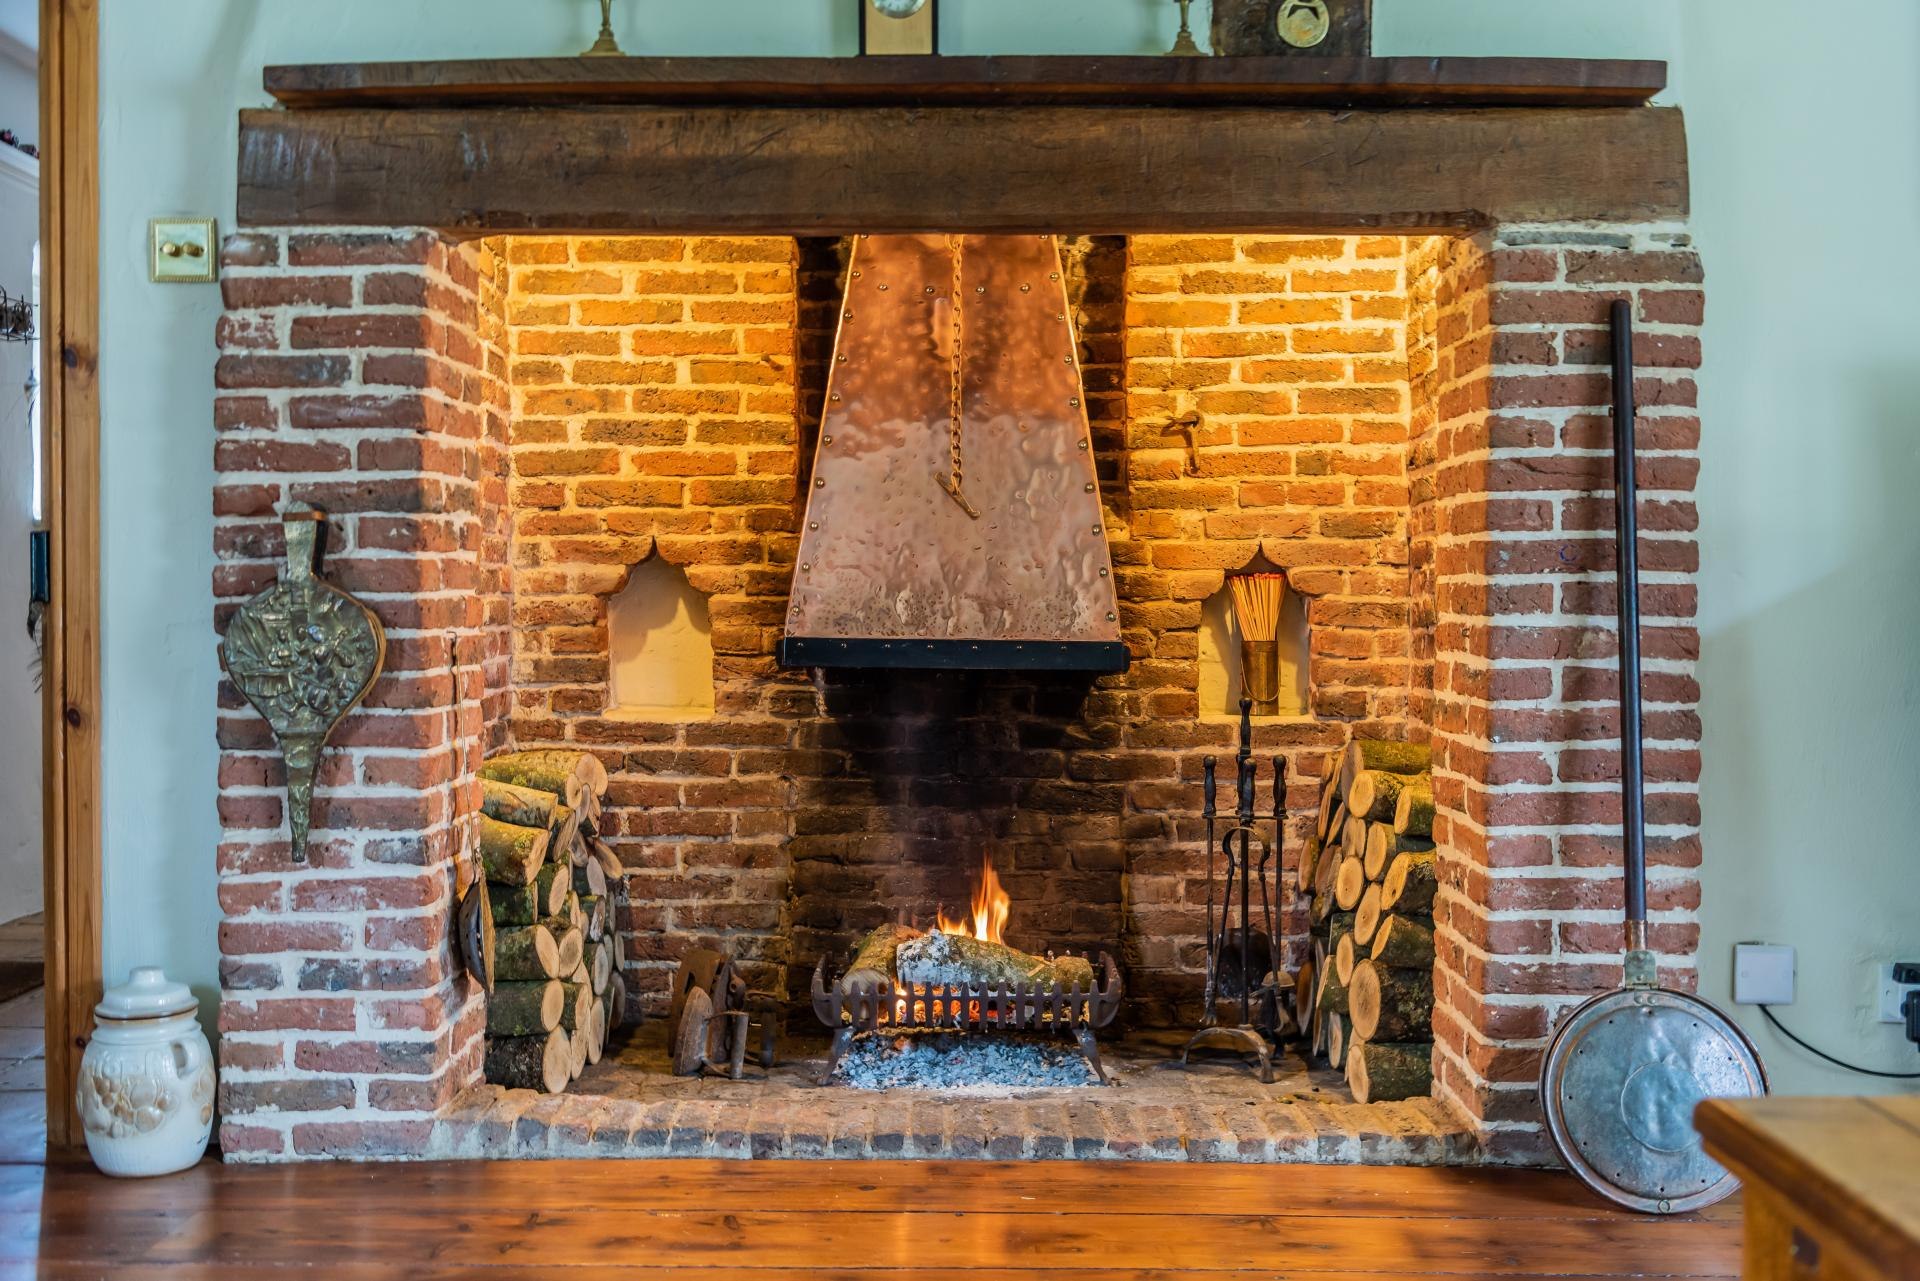 grand brick lined Inglenook fireplace with lit fire and logs